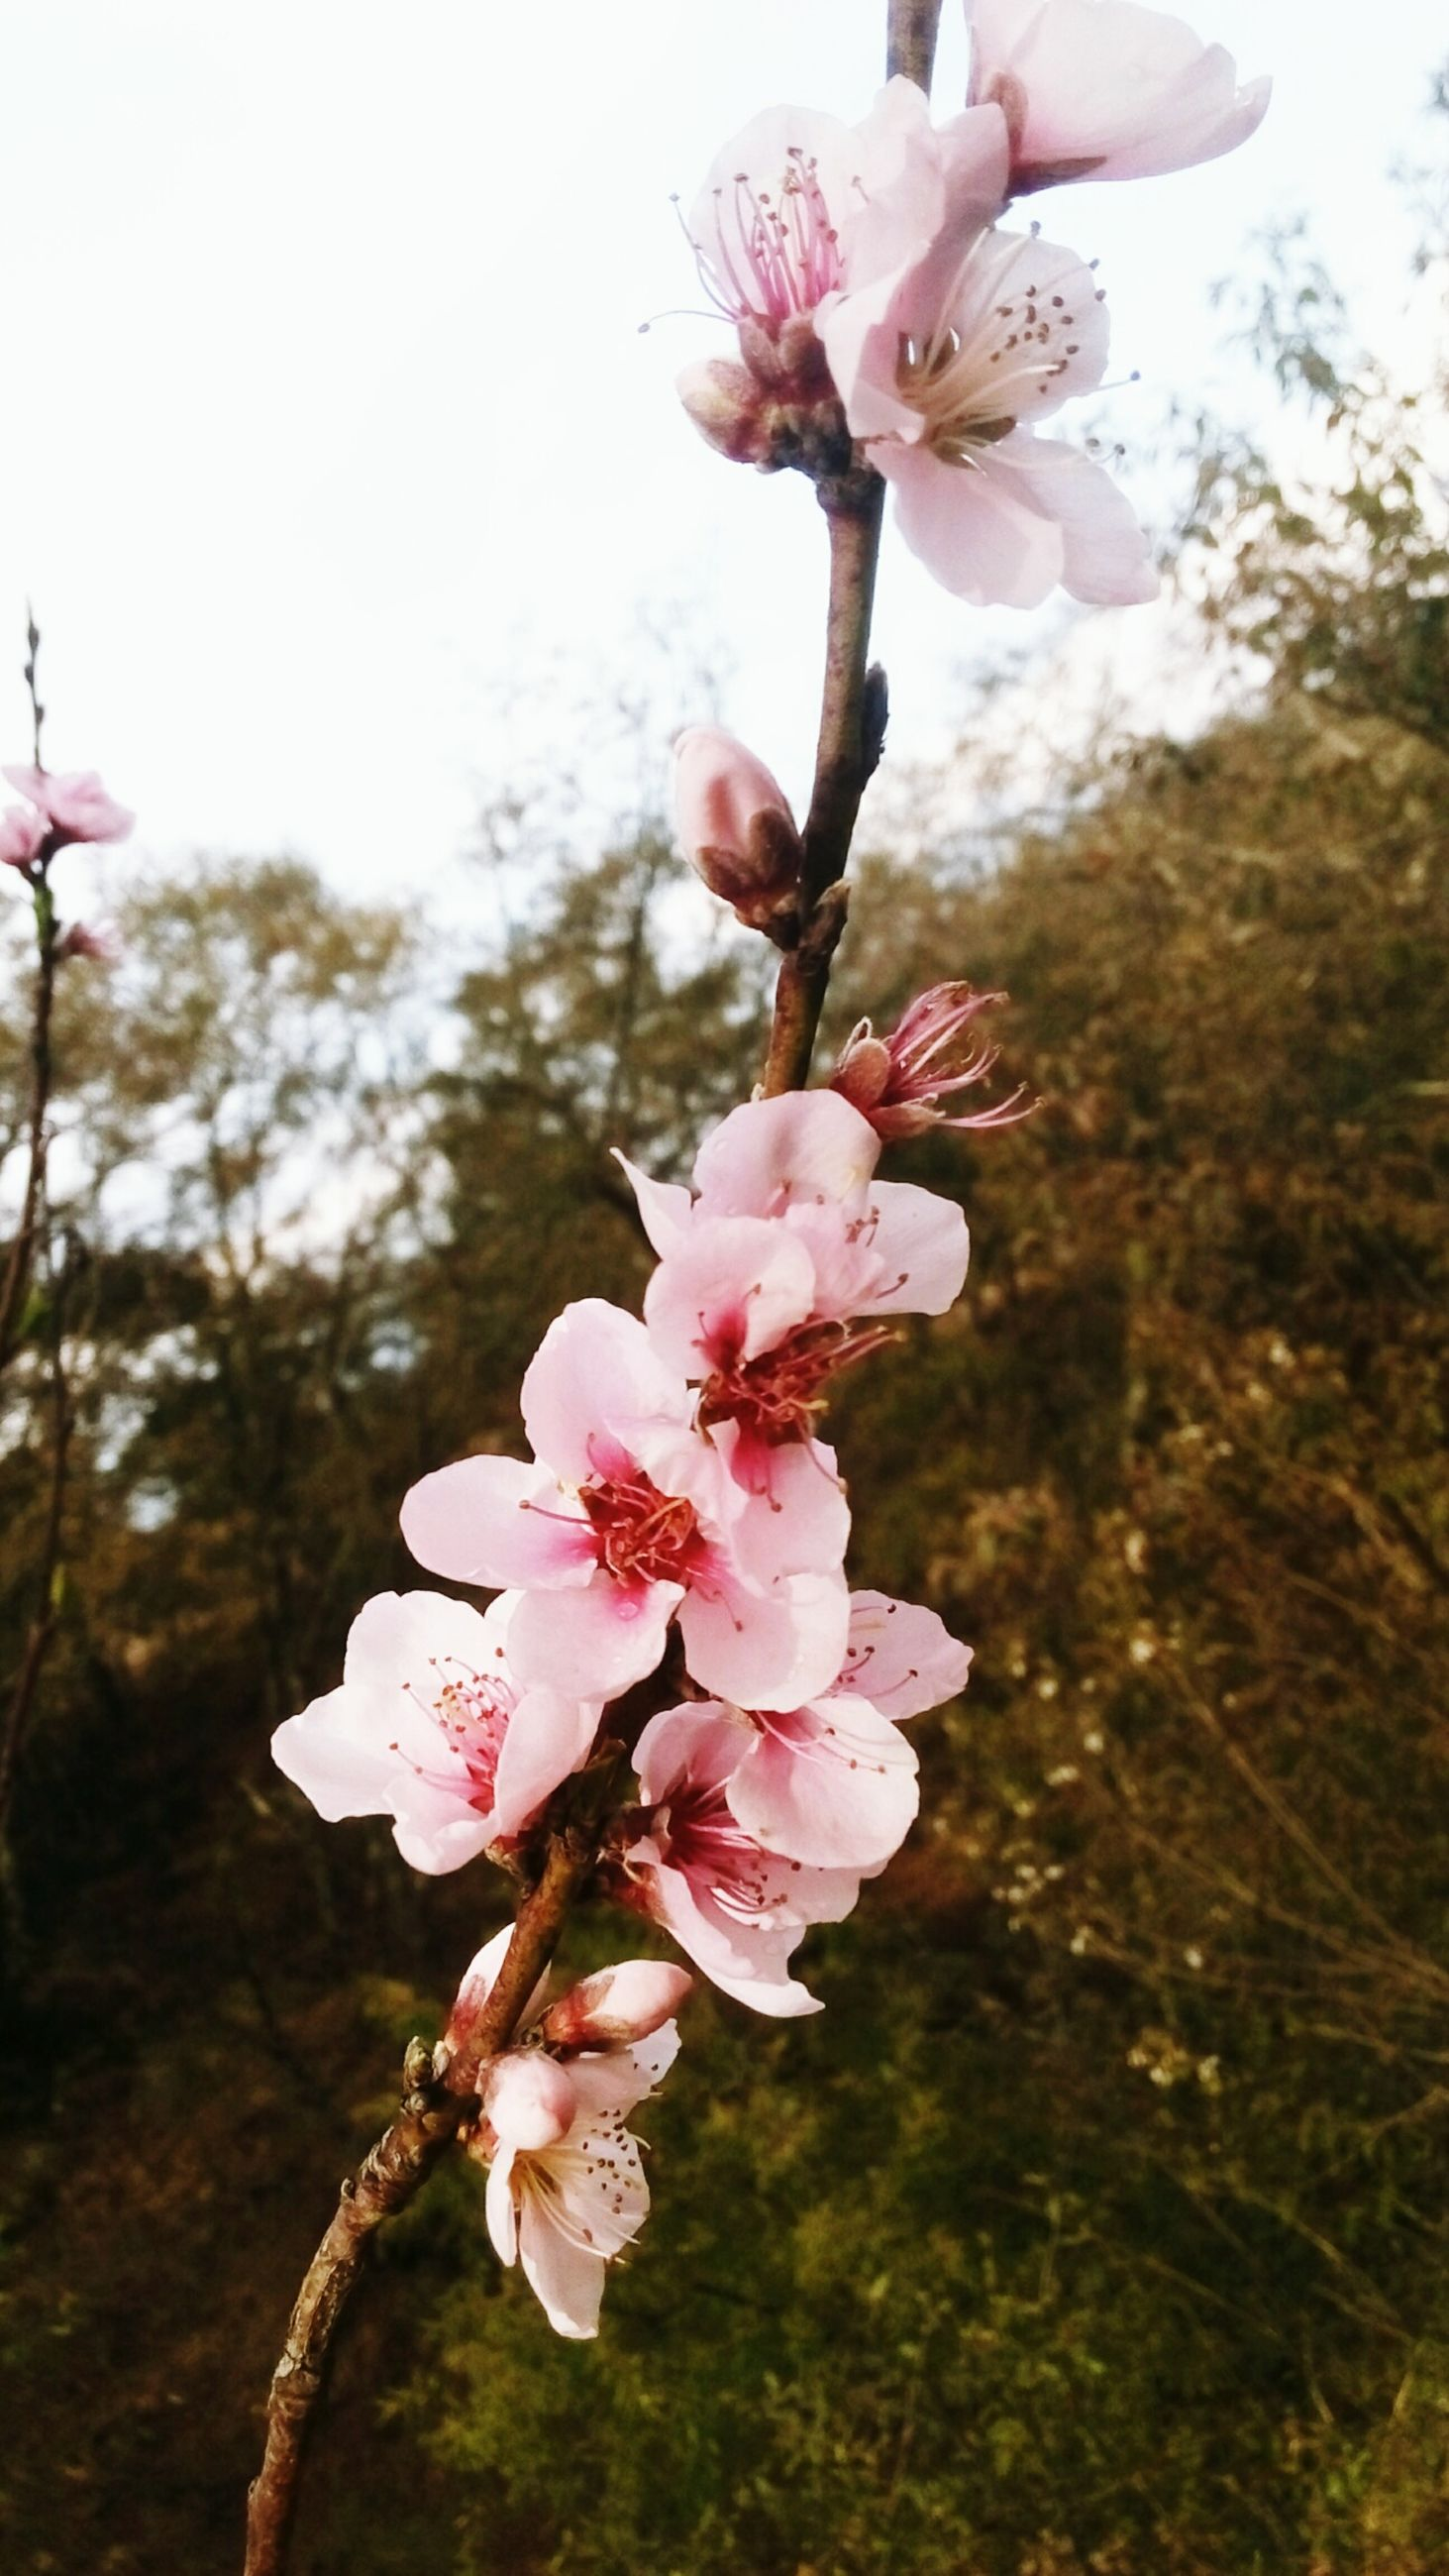 flower, freshness, fragility, growth, branch, petal, beauty in nature, pink color, tree, cherry blossom, nature, blossom, close-up, in bloom, cherry tree, twig, blooming, flower head, focus on foreground, springtime